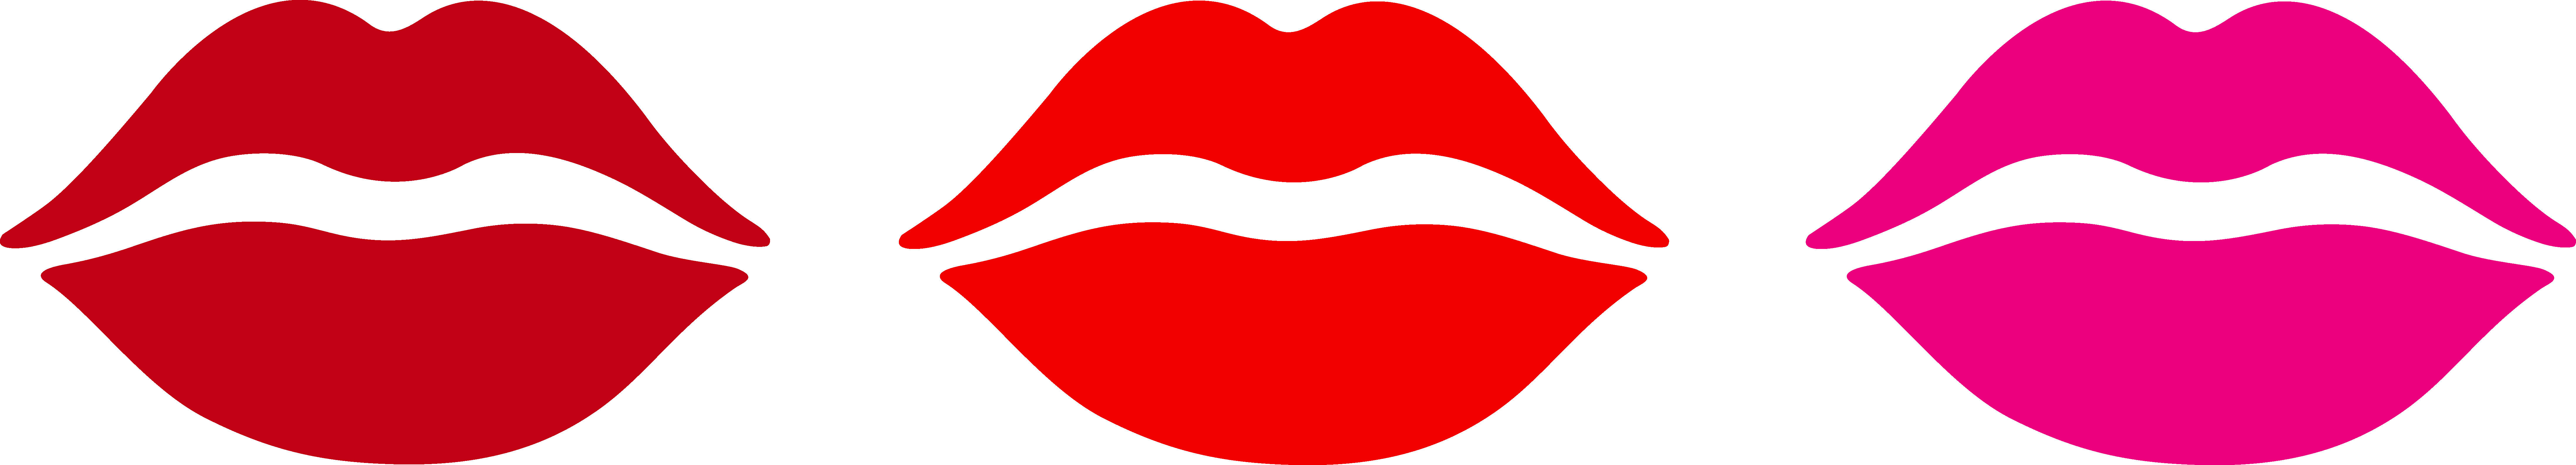 Pink Lips Clip Art - Cliparts.co